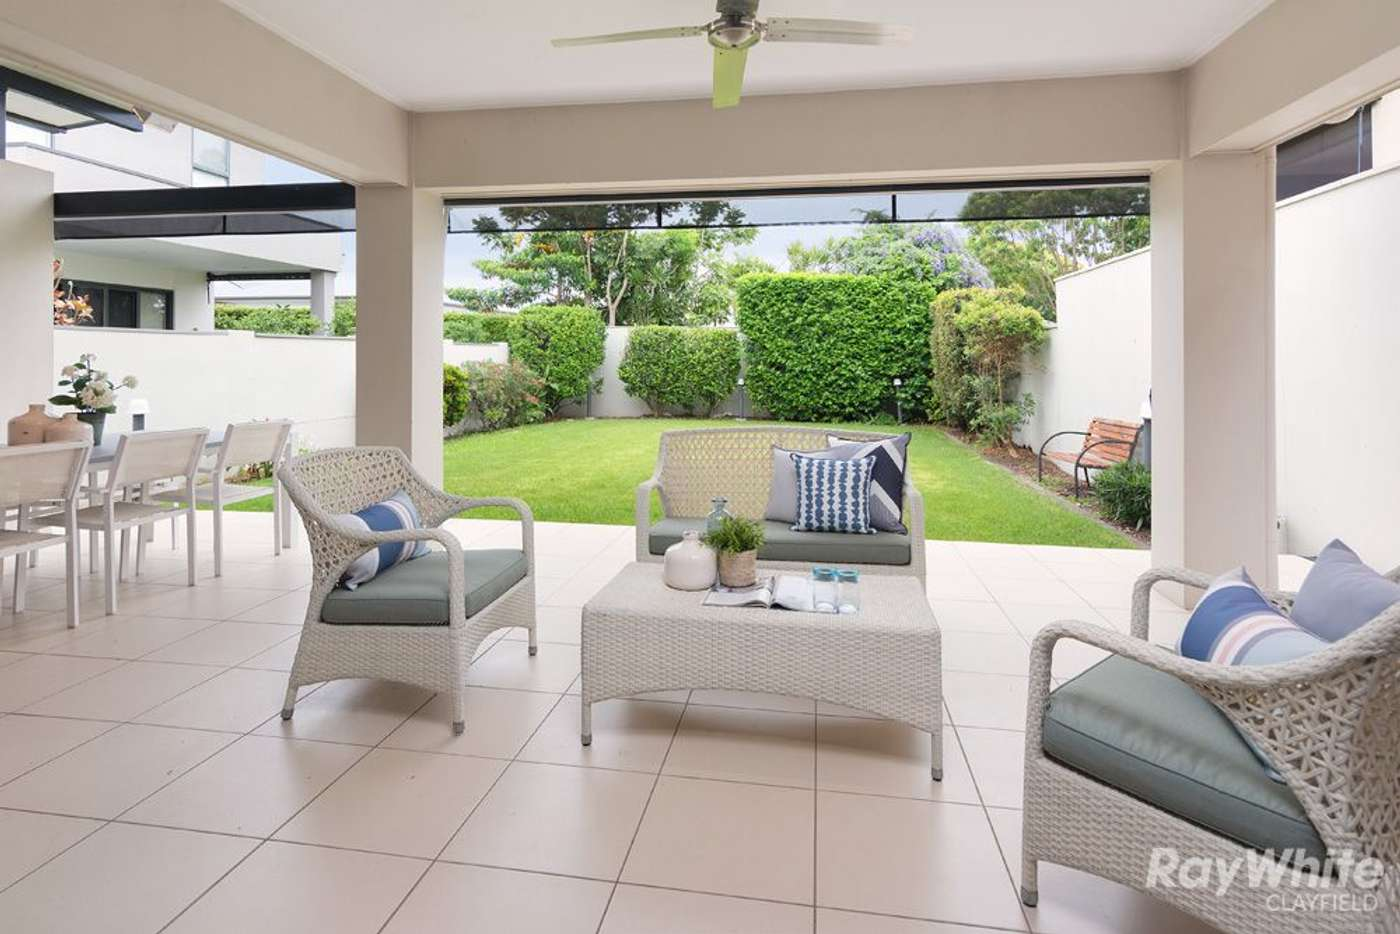 Main view of Homely house listing, 18 Bowman Street, Hendra QLD 4011